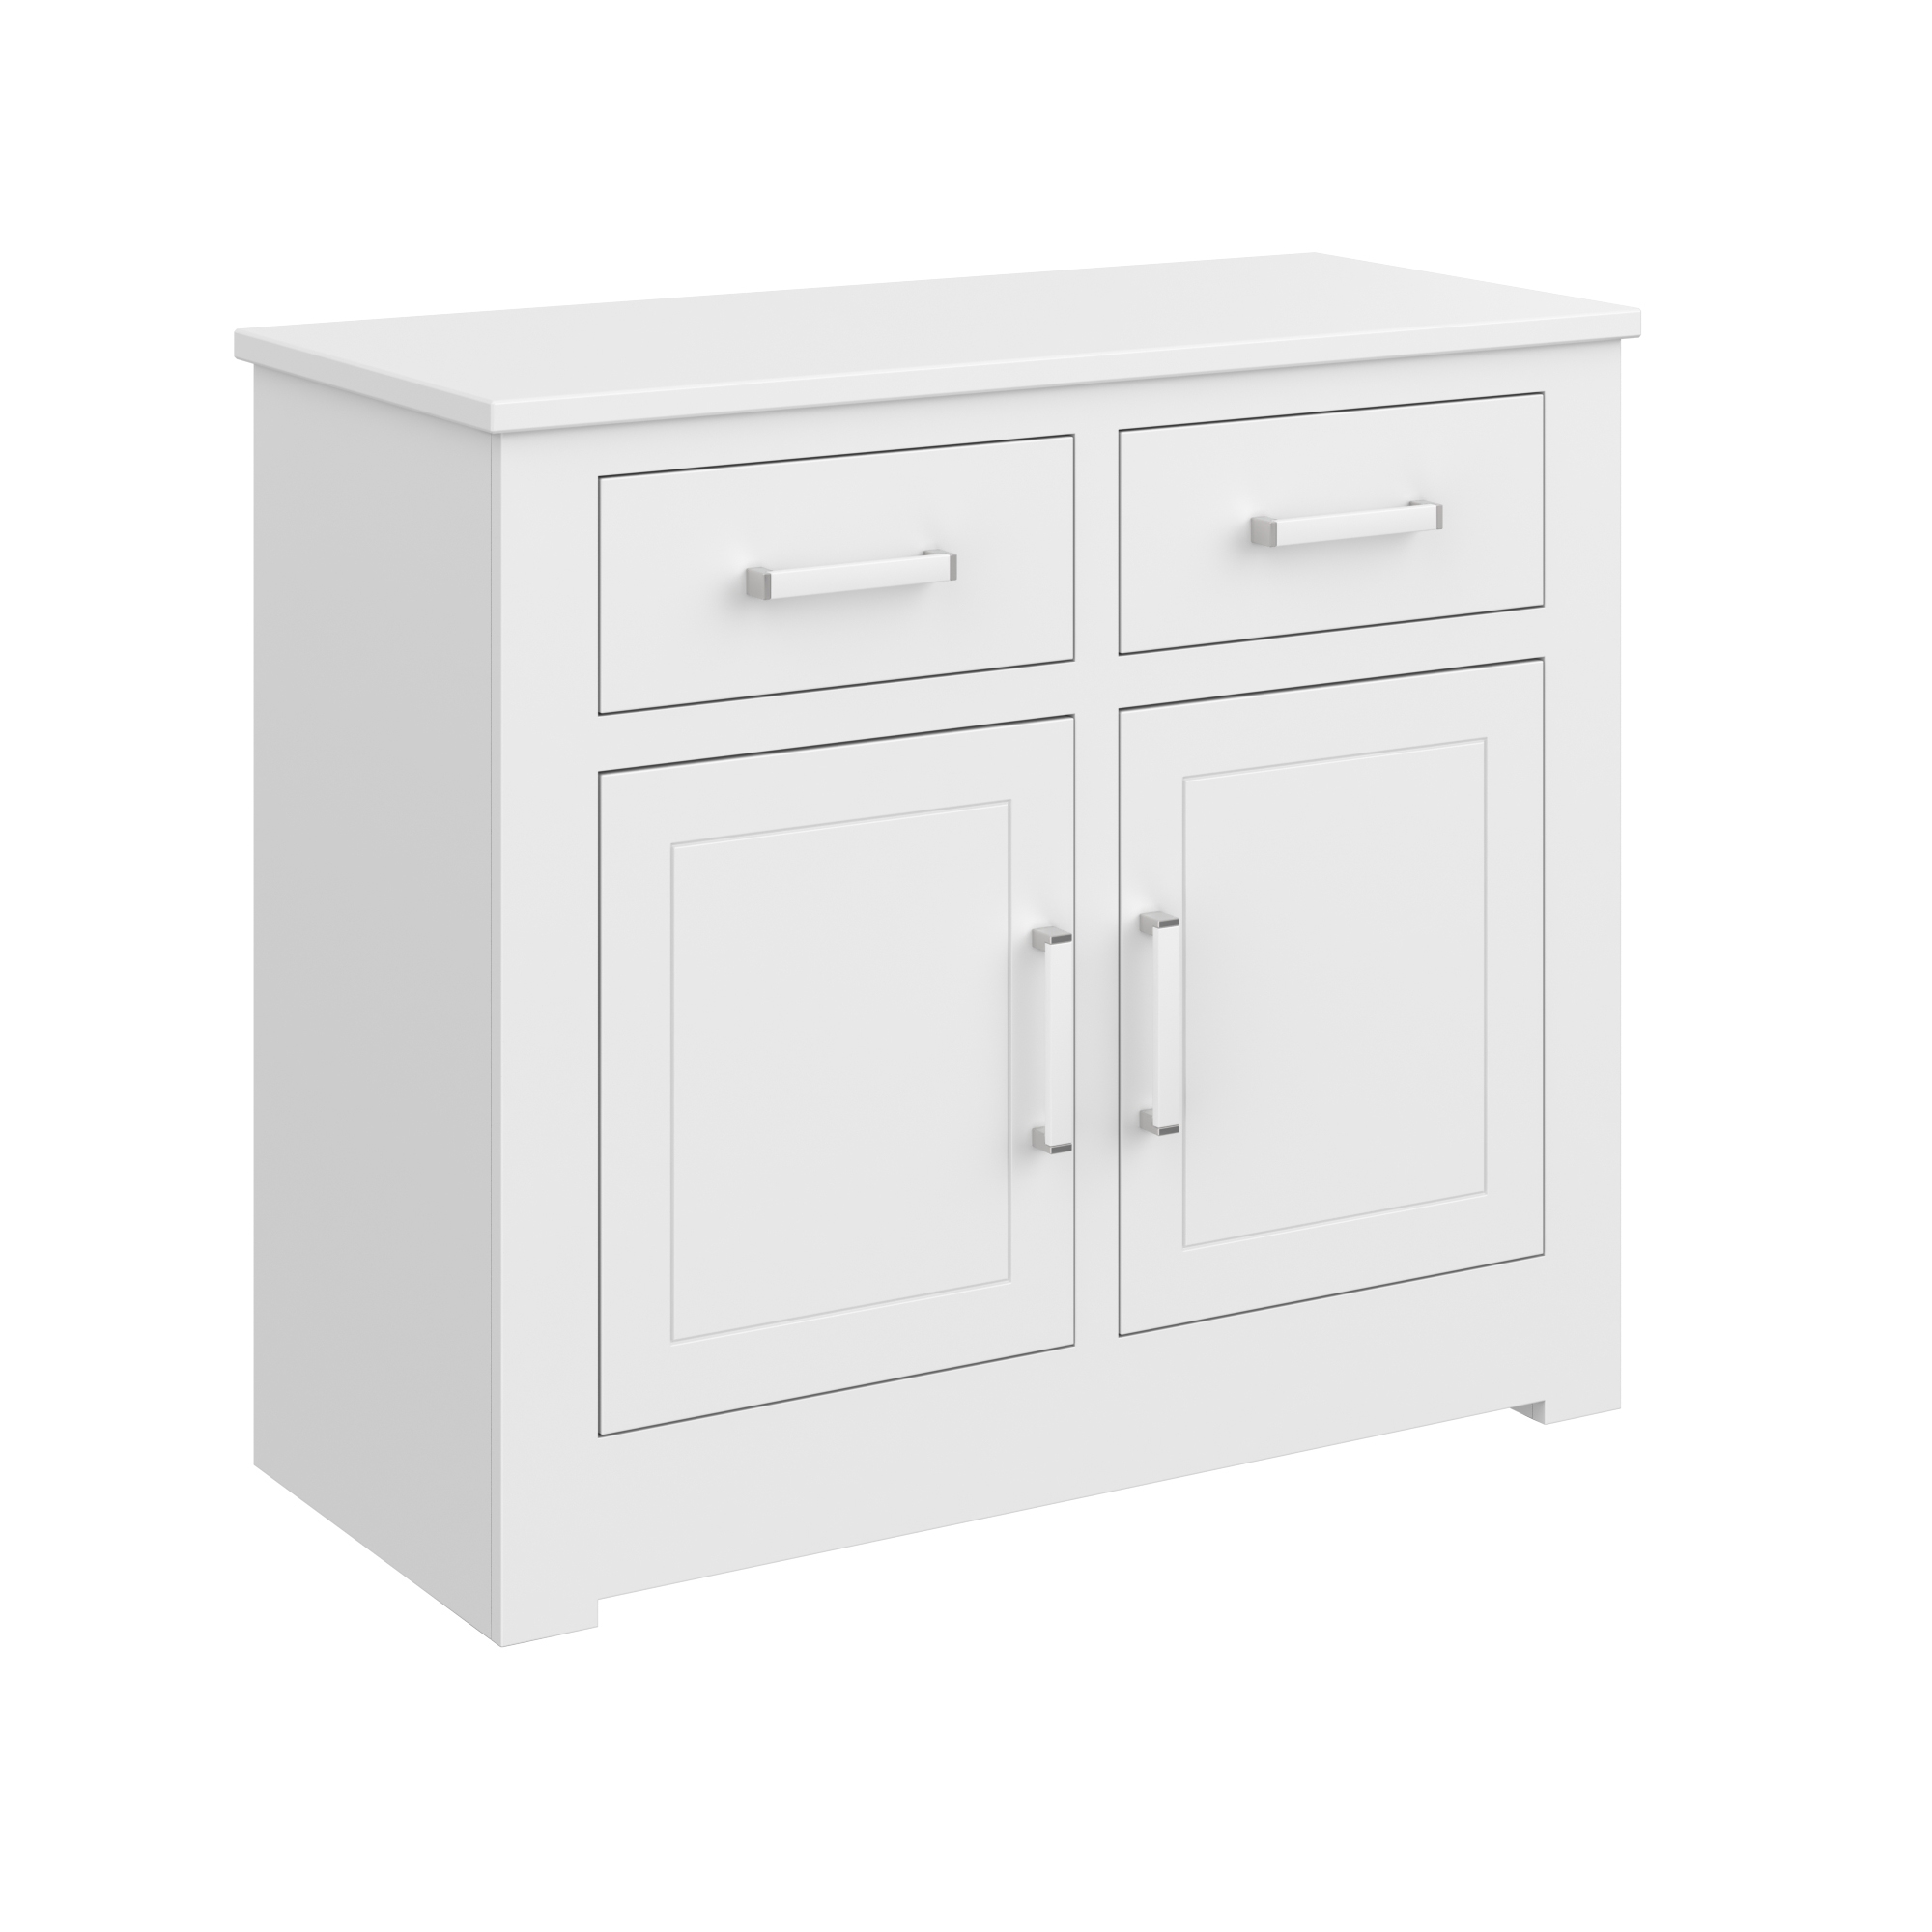 Two Door Two Drawer Base